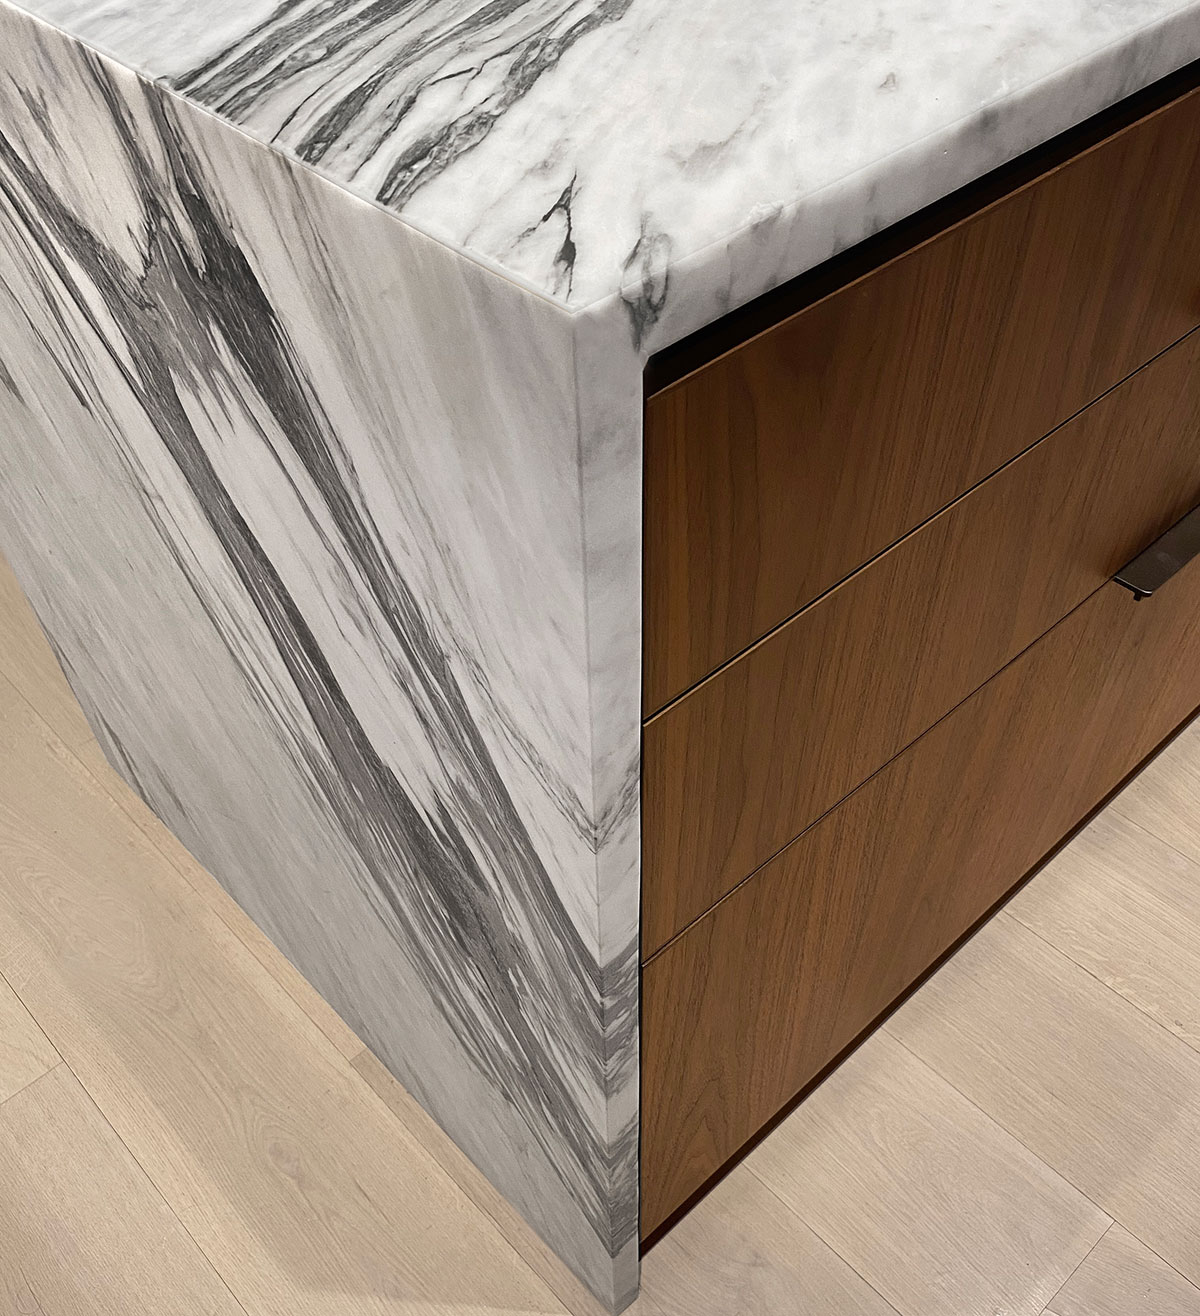 Detail of the marble island on the kitchen of the Loft renovation project in Chelsea, New York City designed by the architecture studio Danny Forster & Architecture